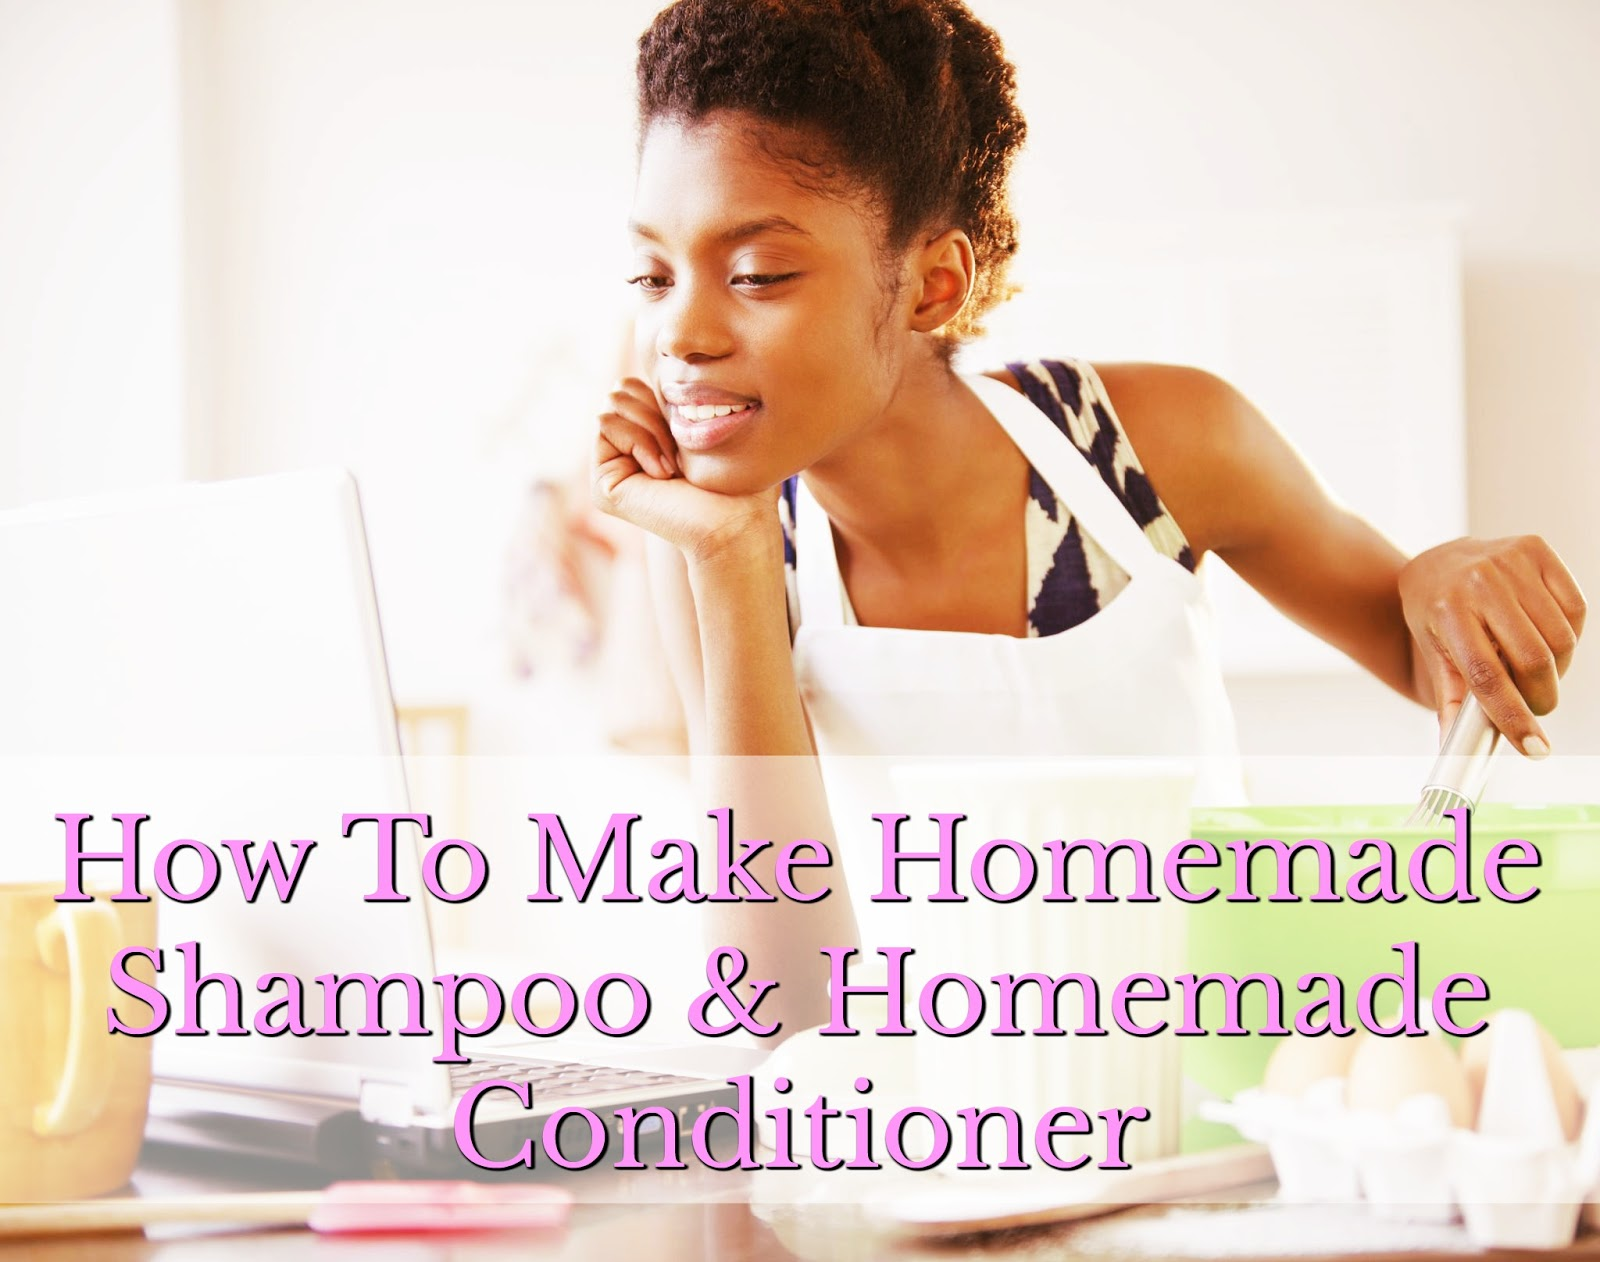 How To Make Homemade Shampoo & Homemade Conditioner